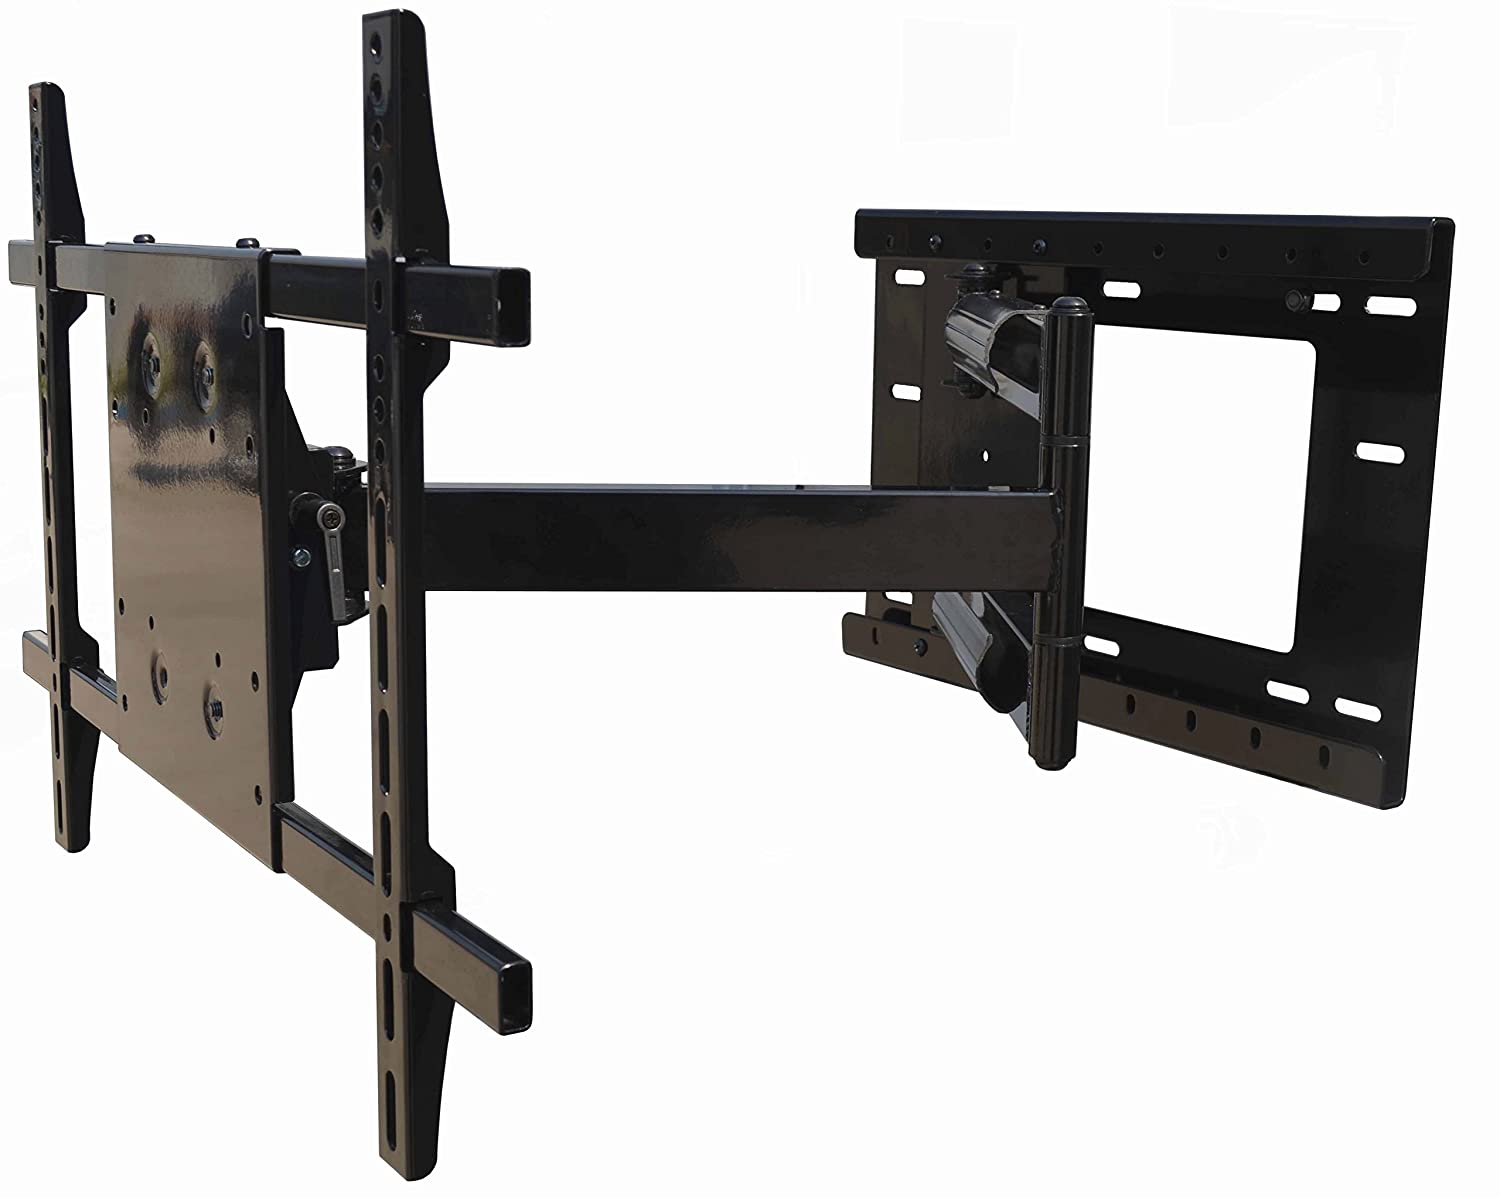 Amazon com: THE MOUNT STORE TV Wall Mount for TCL 65 inch Class 4K